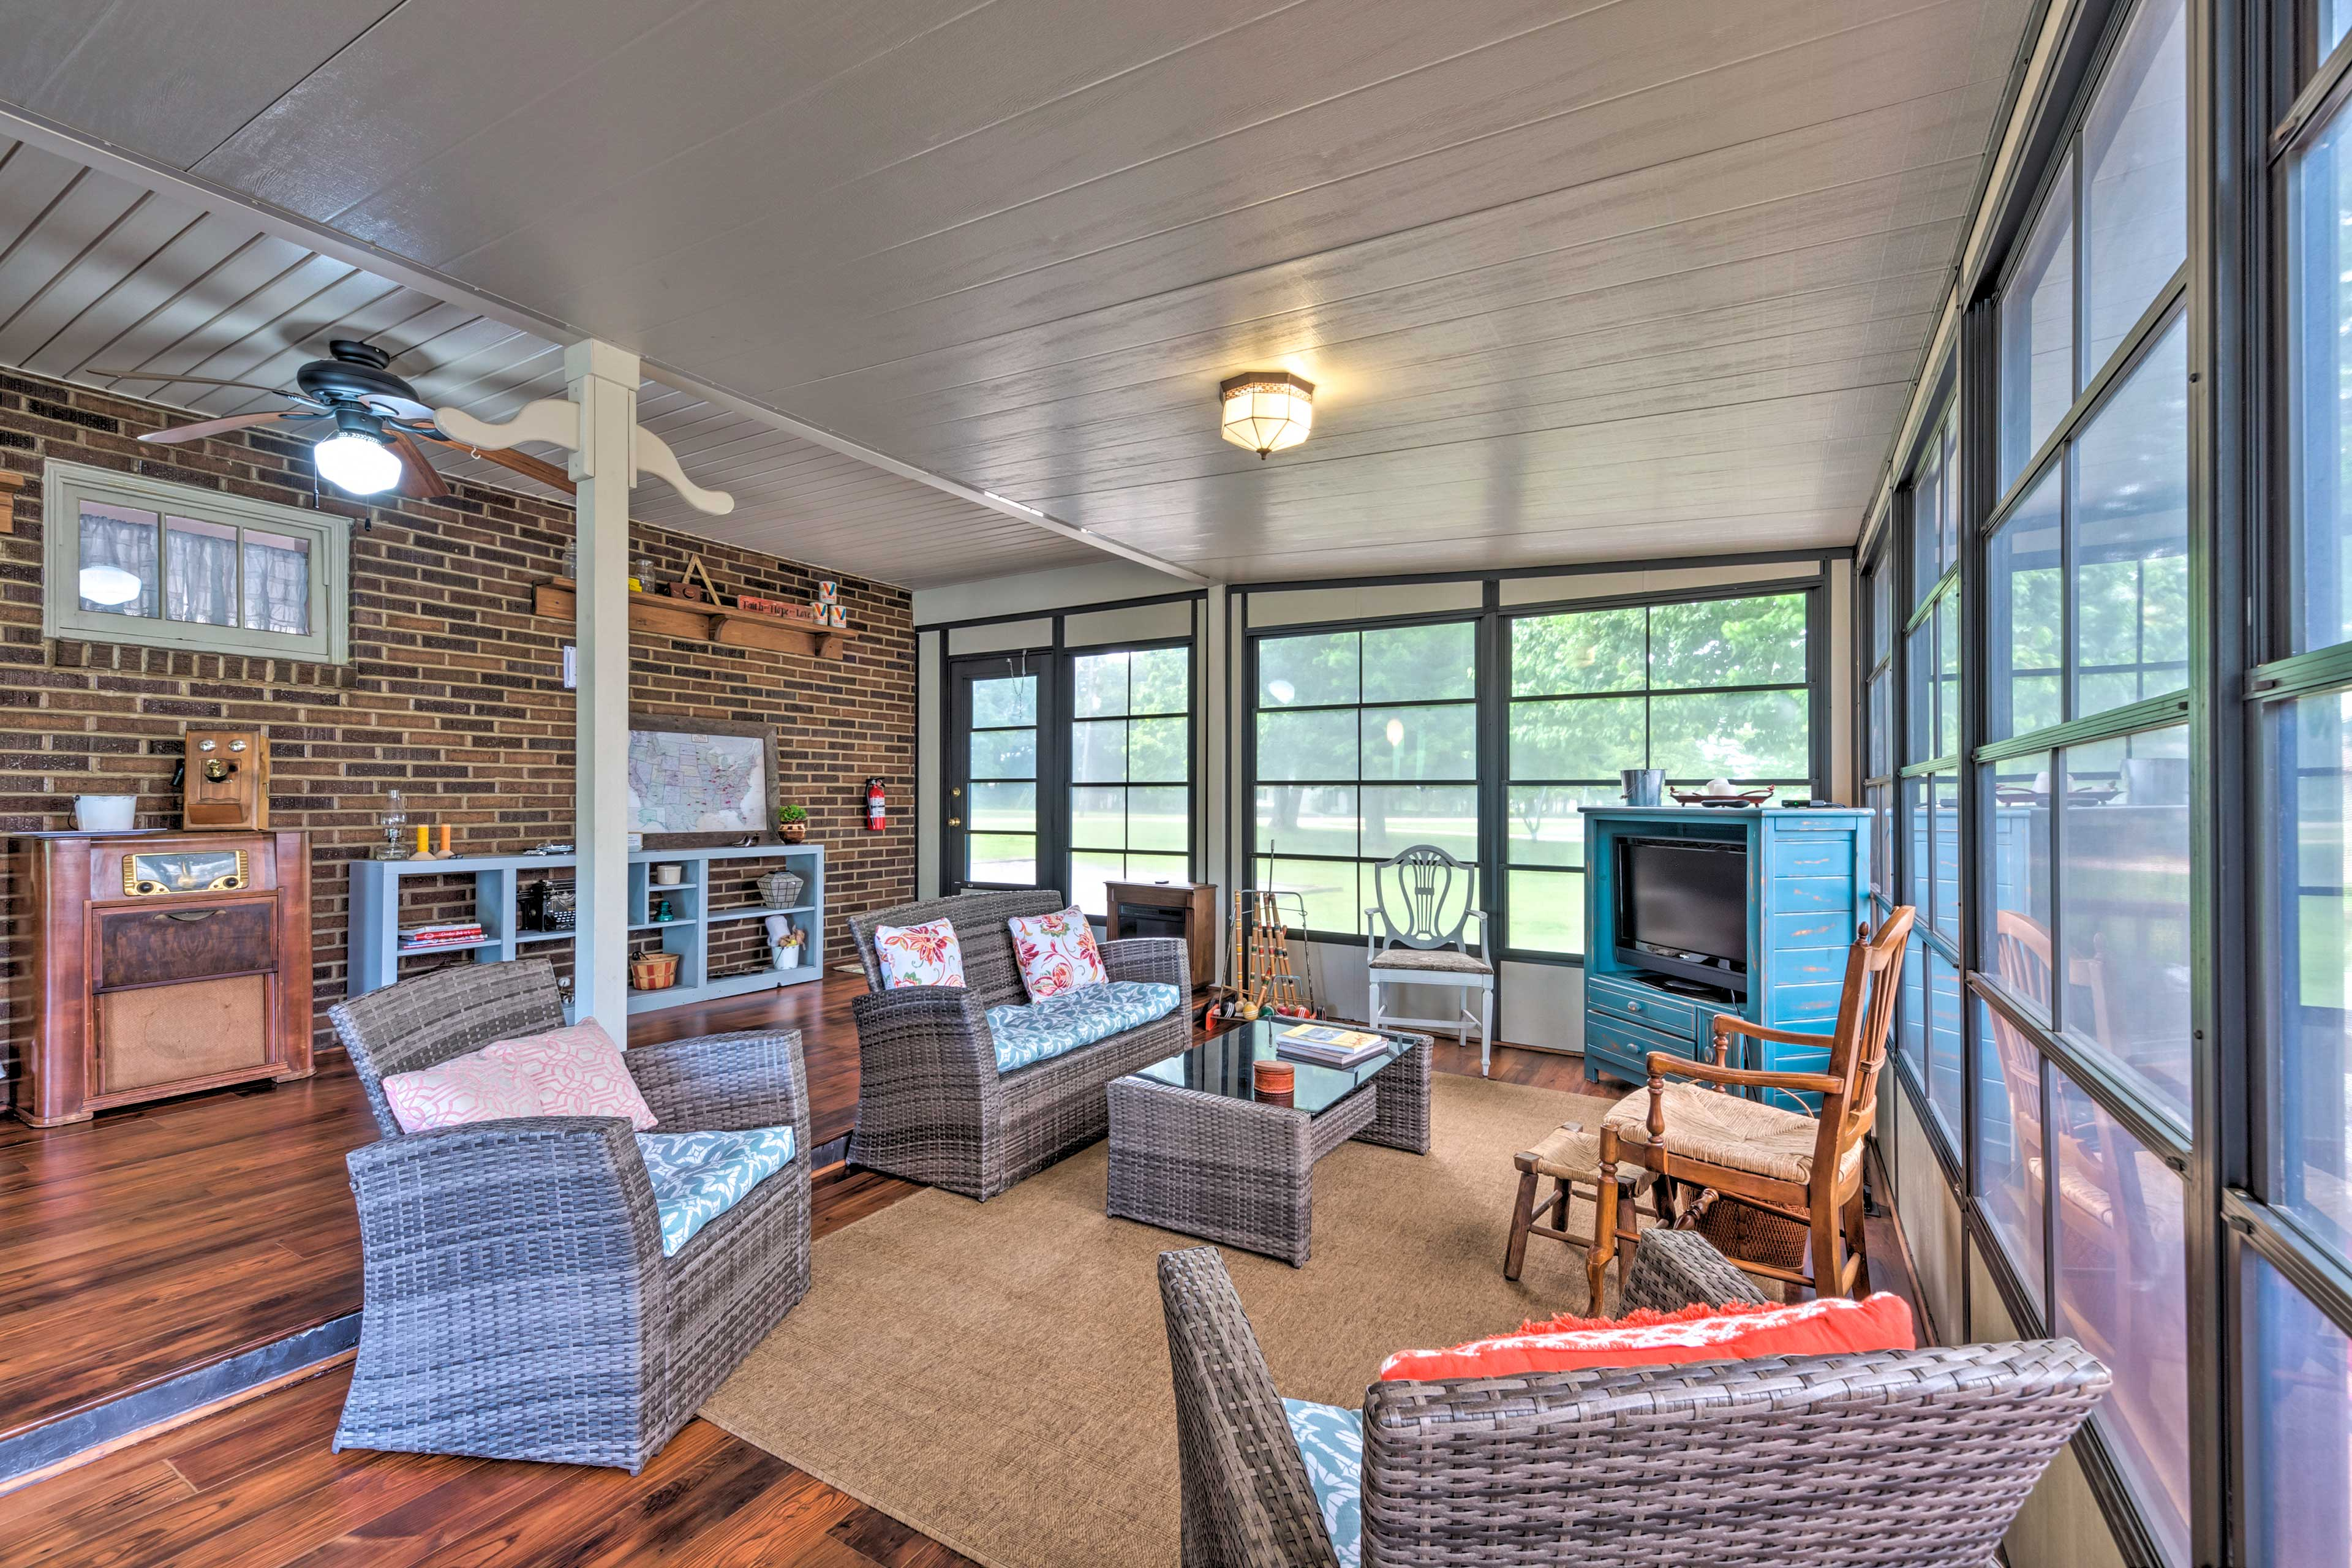 Enjoy relaxing evenings watching movies in the sunroom.